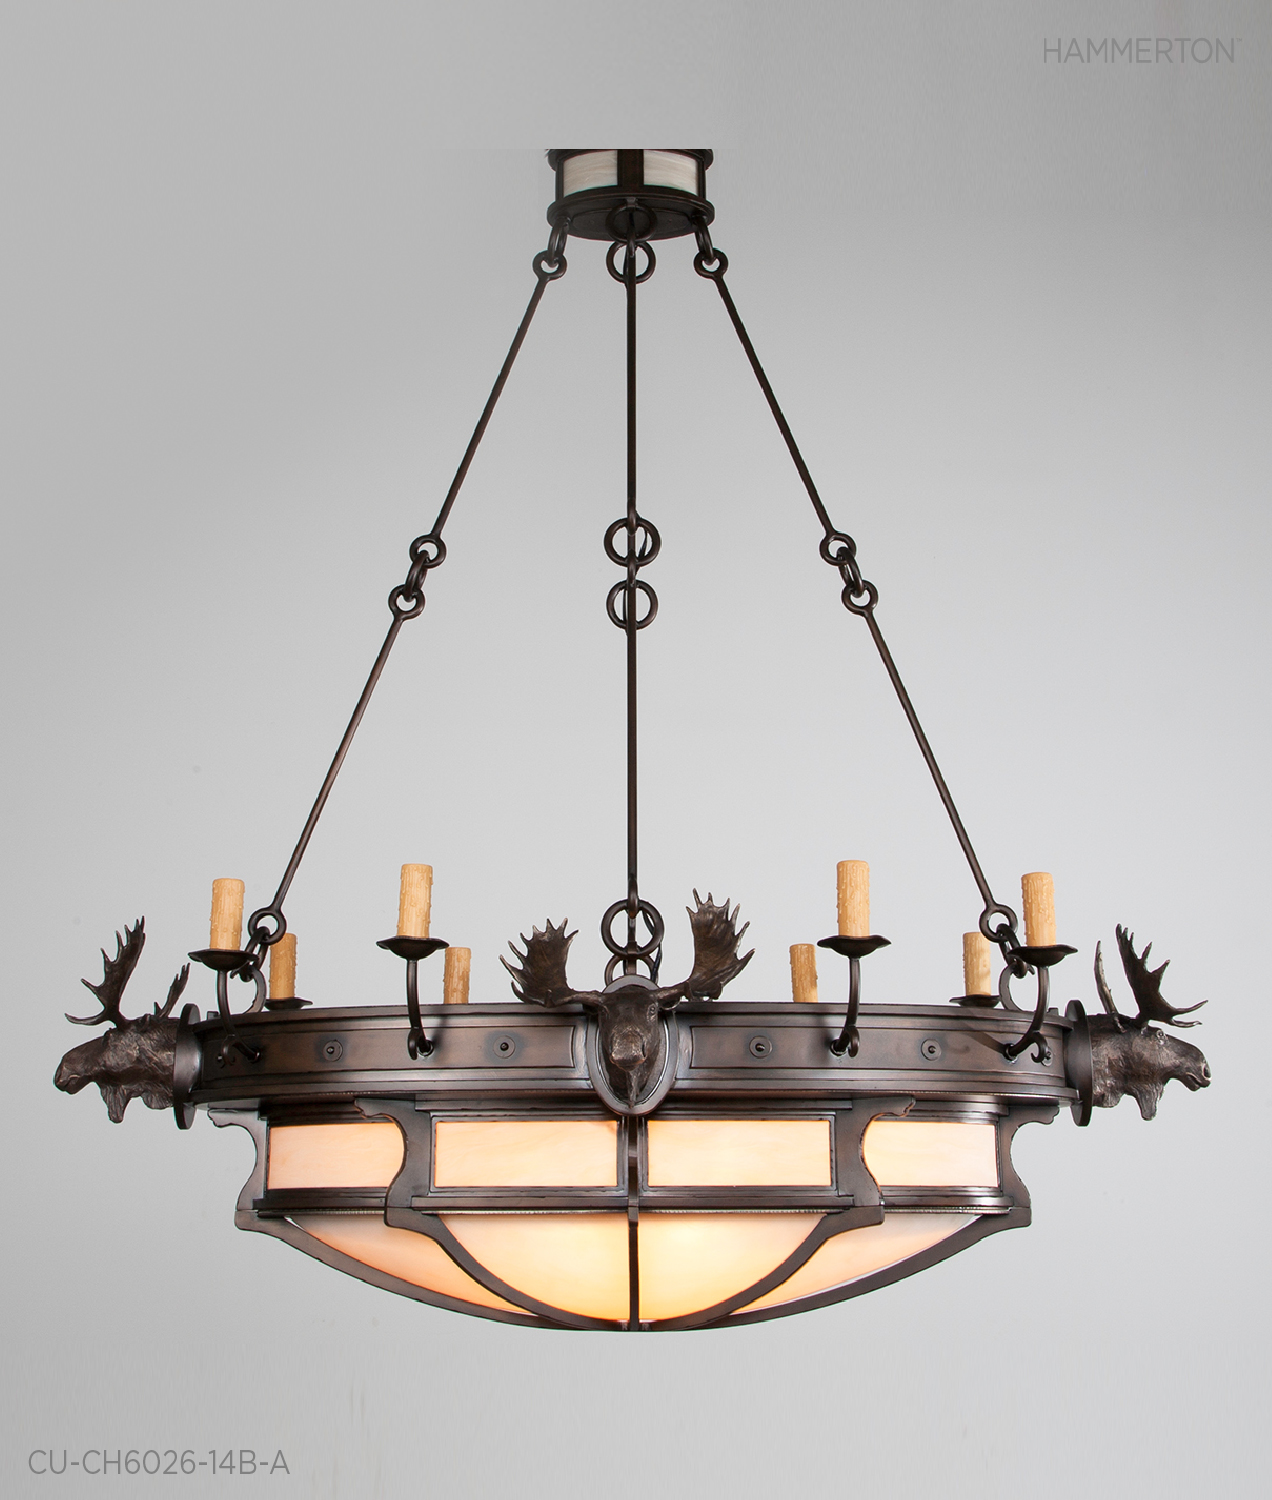 With features quintessential to our Log and Timber collection, the Bronze Moose head motifs encompassing this round 5 ft dia chandelier provide a rustic yet endearing quality.Onyx Acrylic custom dome with Dark Bronze finish.  Fixture: CU-CH6026-14B-A